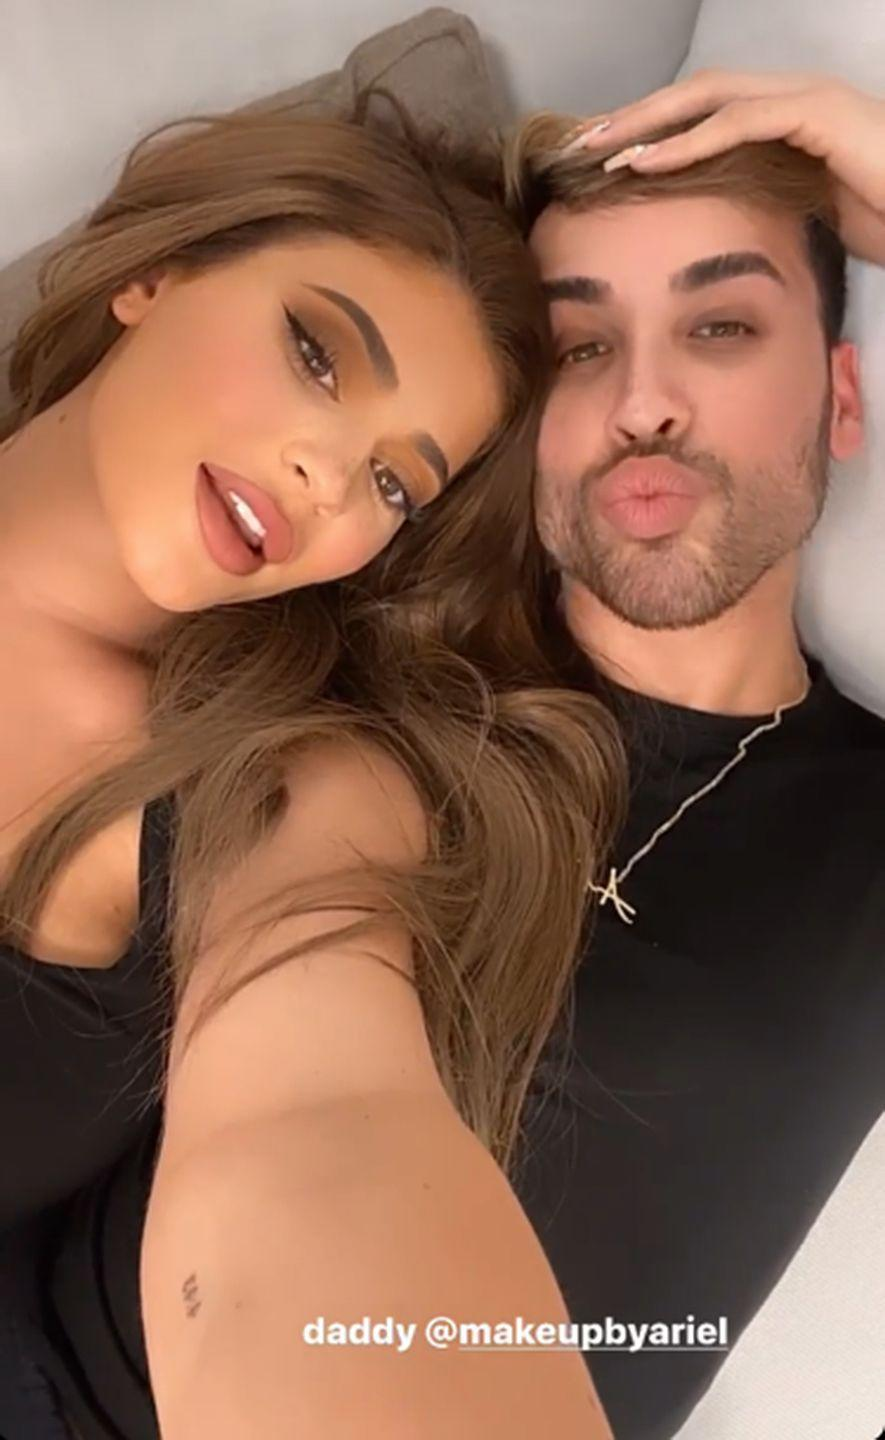 """<p>Kylie Jenner showed off her newest tattoo in a selfie on her Instagram story with her makeup artist, Ariel Tejada. The ink, on her inner left arm, reads """"4:43,"""" which is the time that Stormi was born, according to <em><a href=""""https://www.tmz.com/2018/02/08/stormi-webster-birth-certificate-kylie-jenner-travis-scott/"""" rel=""""nofollow noopener"""" target=""""_blank"""" data-ylk=""""slk:TMZ"""" class=""""link rapid-noclick-resp"""">TMZ</a></em>. This isn't Kylie's only Stormi-dedicated tat (she has her daughter's name above her right elbow as well), but the subtly and simplicity of this one is too precious. </p>"""